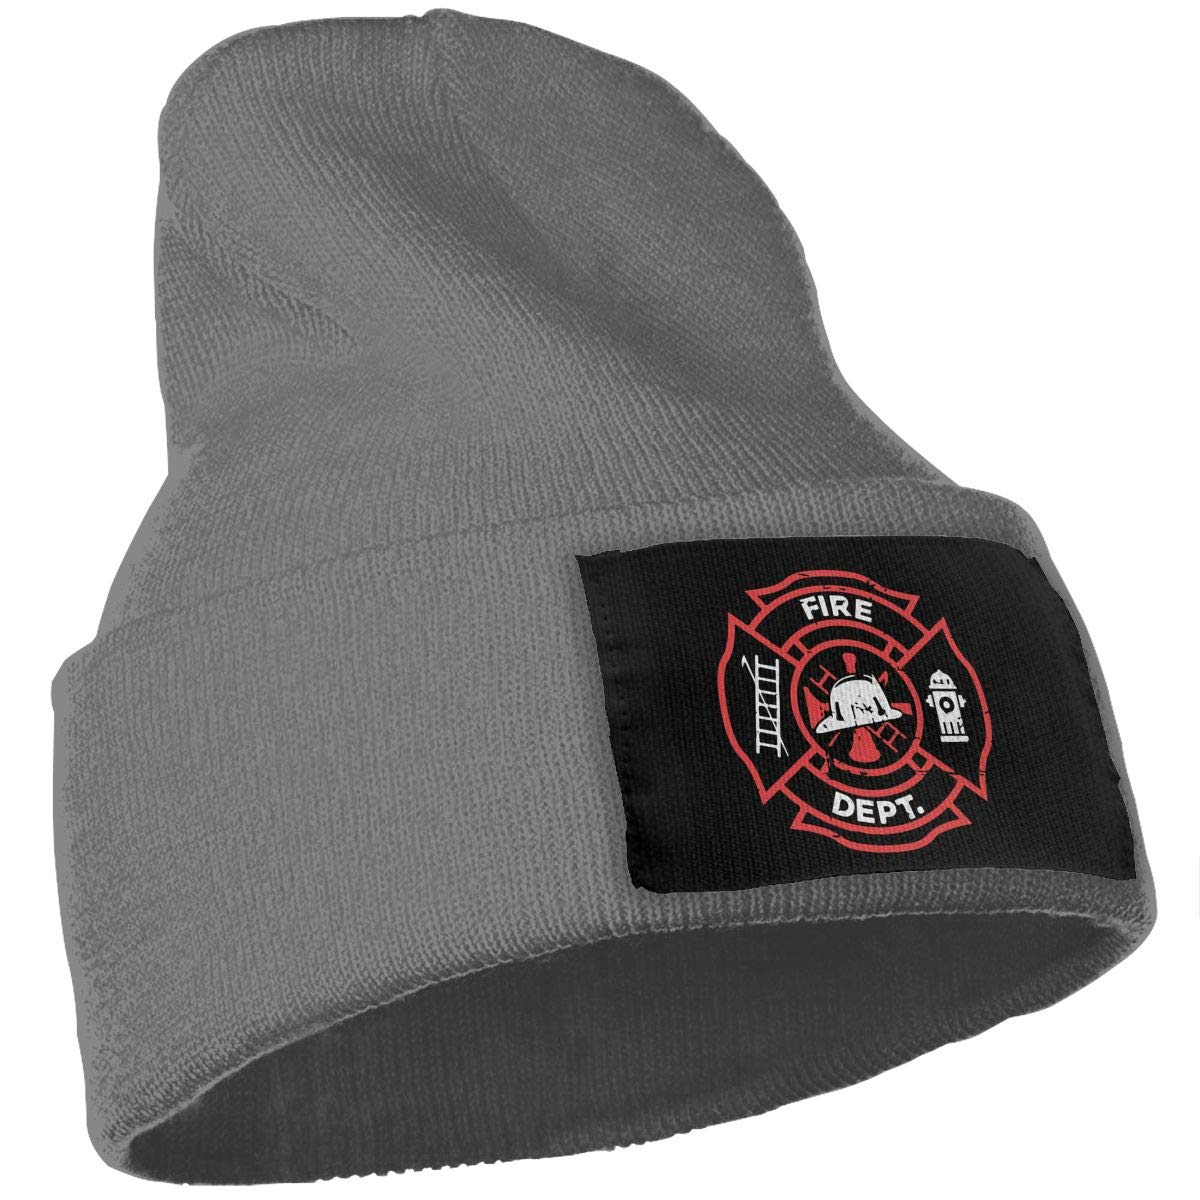 COLLJL-8 Unisex Distressed Firefighter Outdoor Warm Knit Beanies Hat Soft Winter Knit Caps